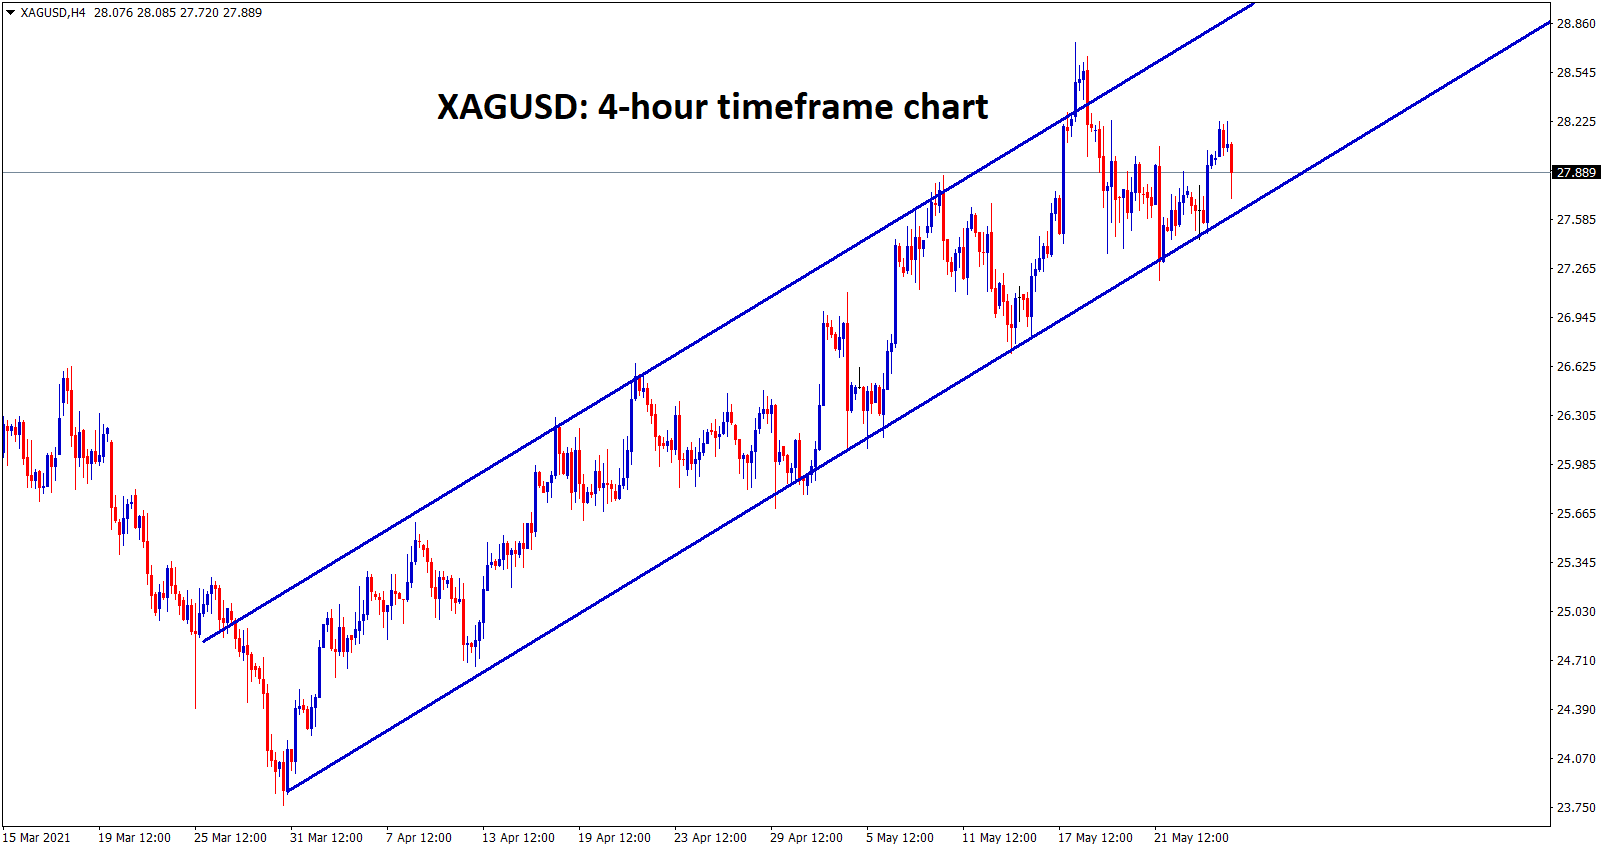 XAGUSD silver is moving in an Ascending channel continuosly for long time